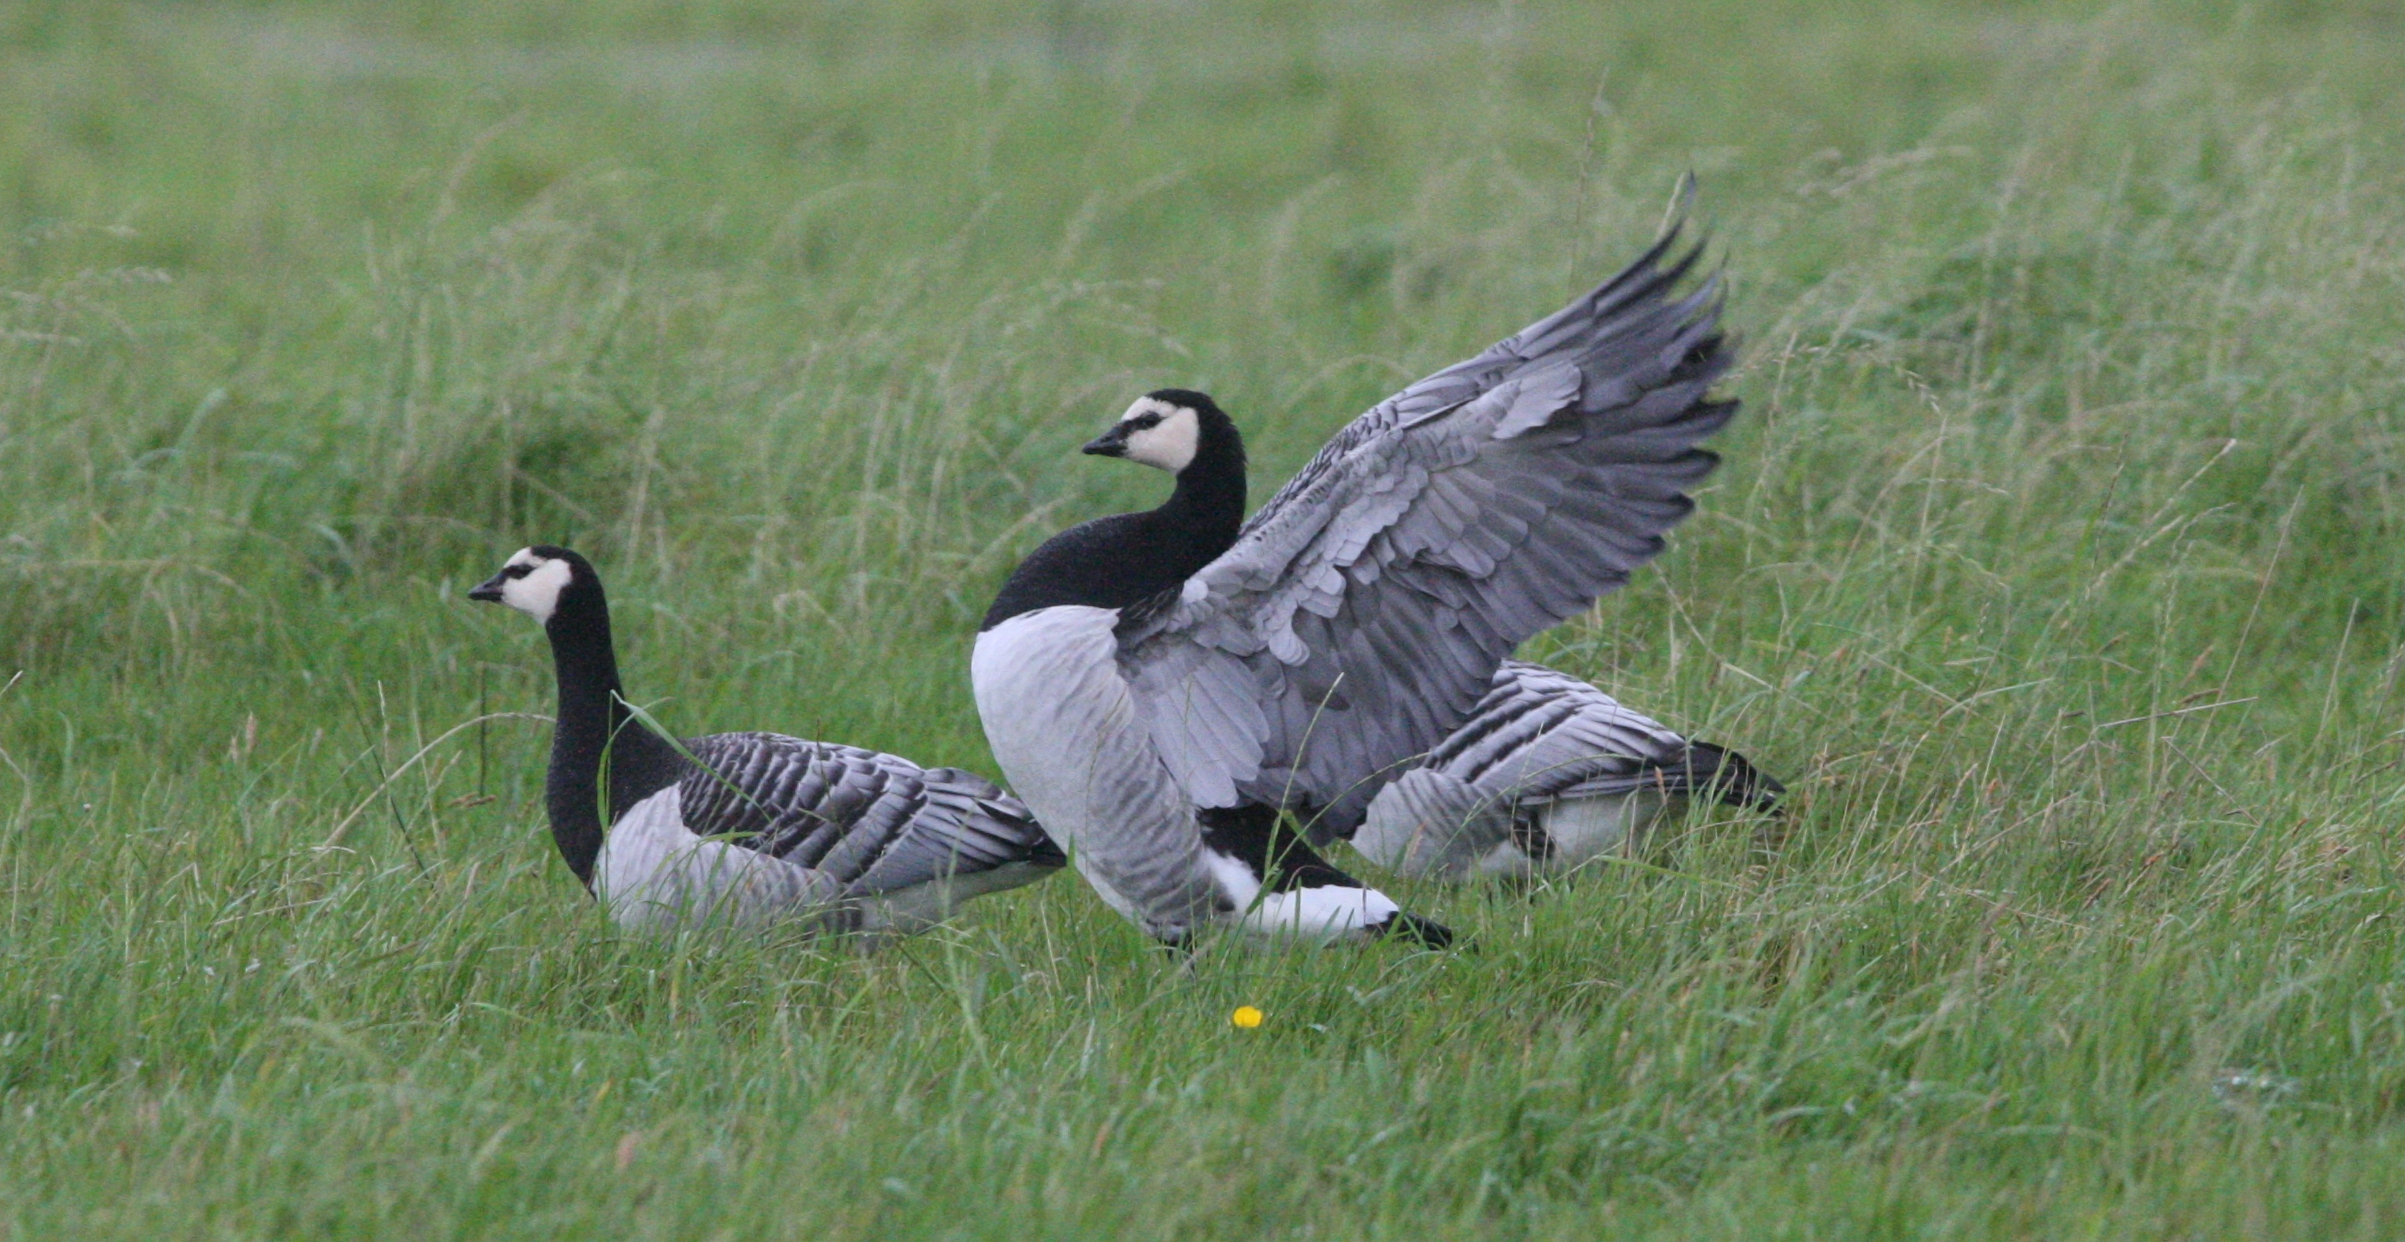 A win for barnacle geese